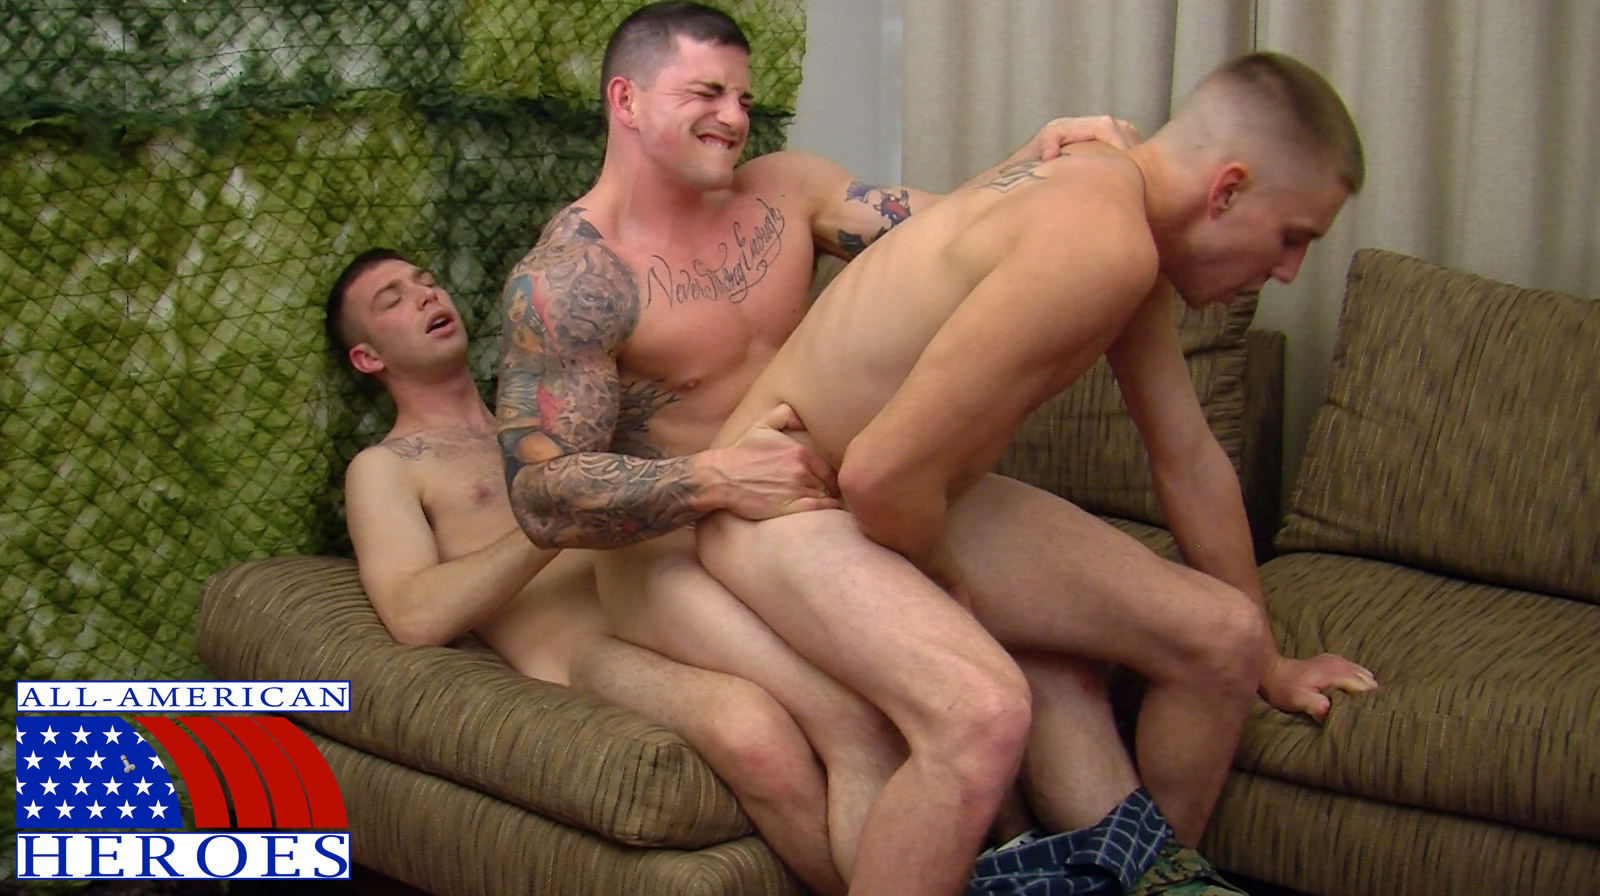 All American Heroes Sergeant Slate Triple fucking big cocks Army guys Amateur Gay Porn 11 Two Real Army Privates Fuck Their Muscle Sergeant and Cum In His Mouth